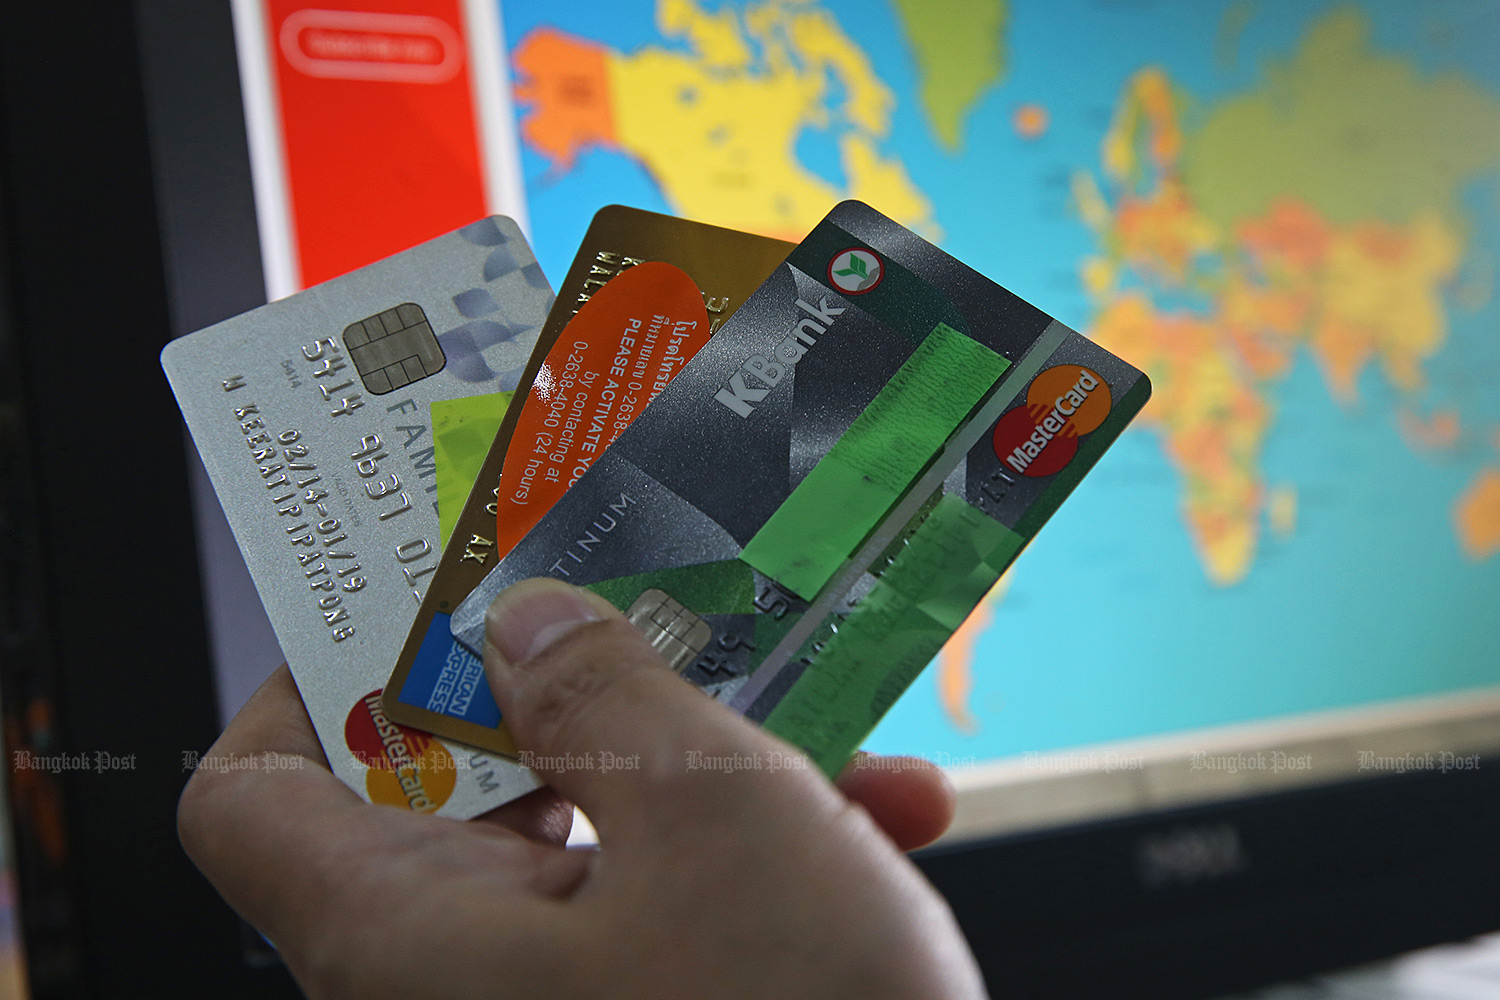 Credit card points can often be converted into frequent flyer miles, allowing card holders to reach free air tickets quicker. (Photo by Varuth Hirunyatheb)